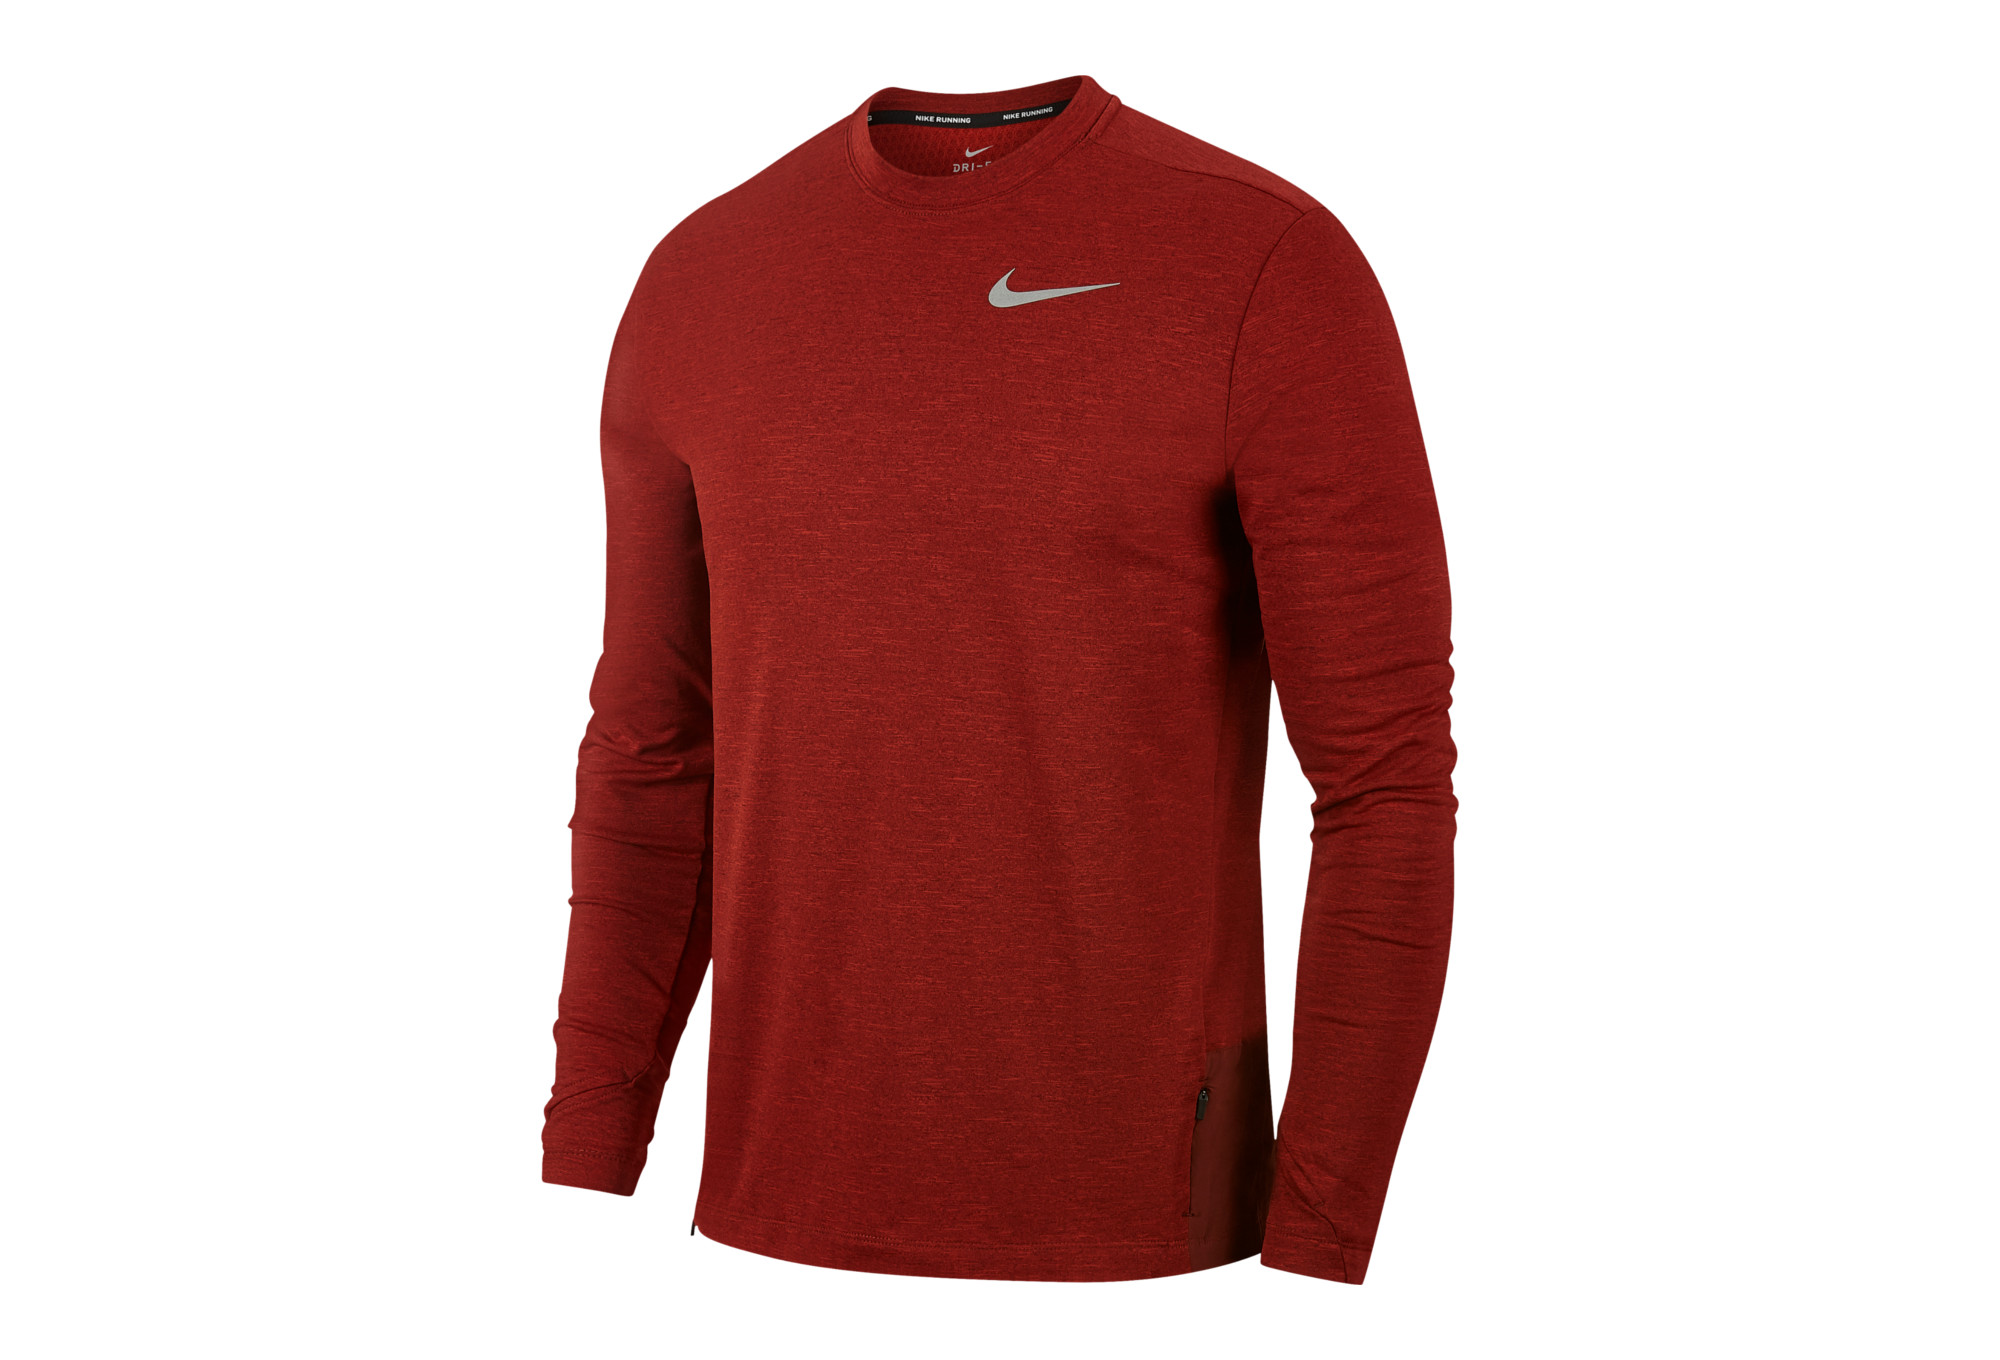 e264e926a8c72 Maillot Manches Longues Nike Therma Sphere Element Rouge   Alltricks.fr